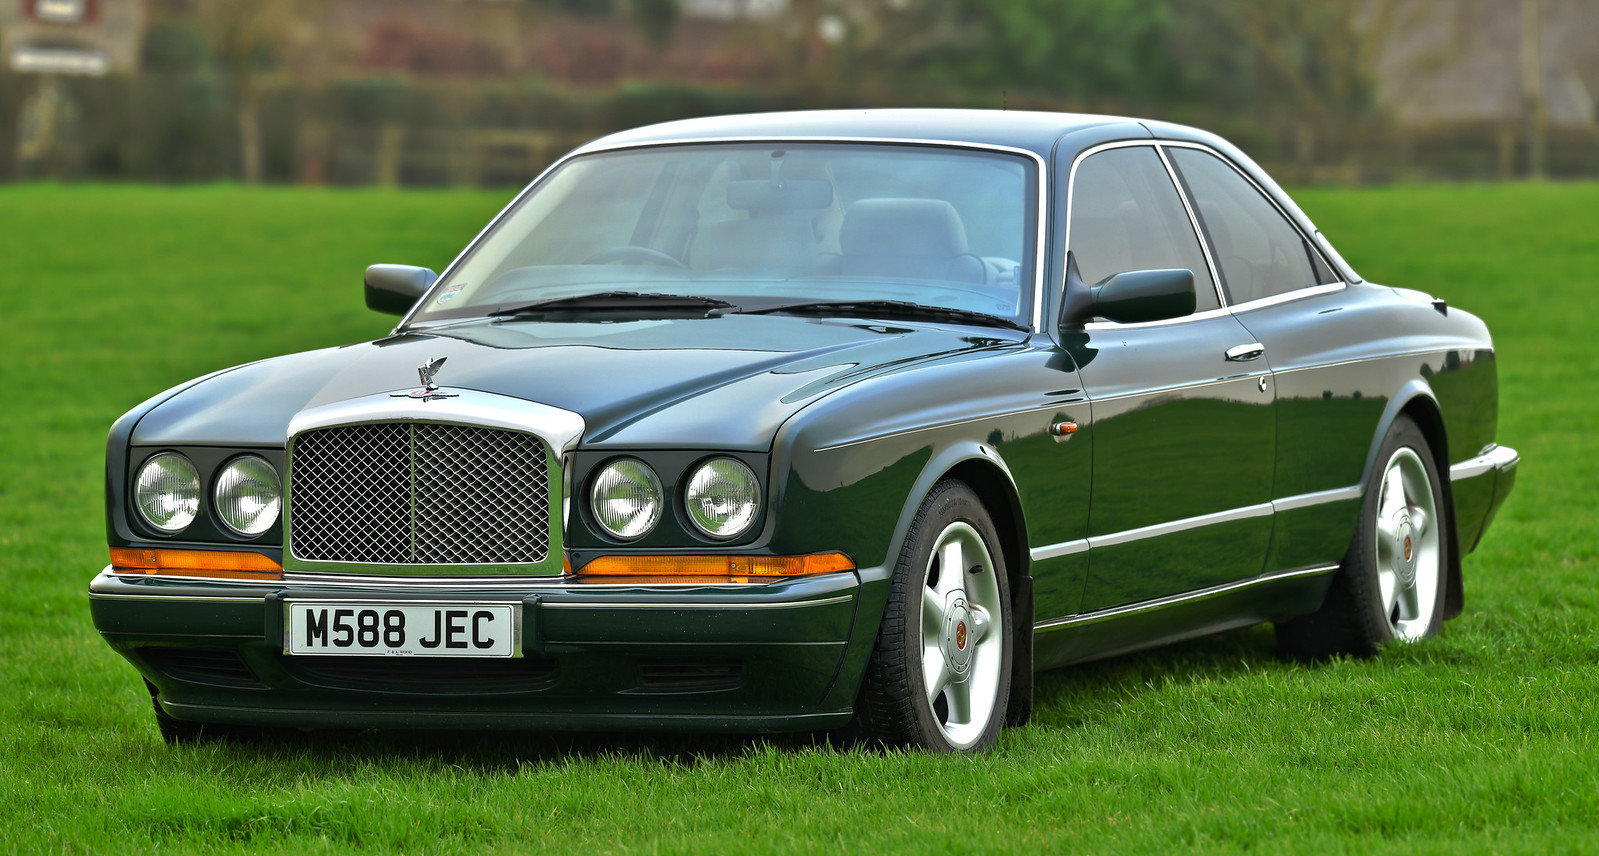 1995 Bentley Continental S For Sale (picture 1 of 6)